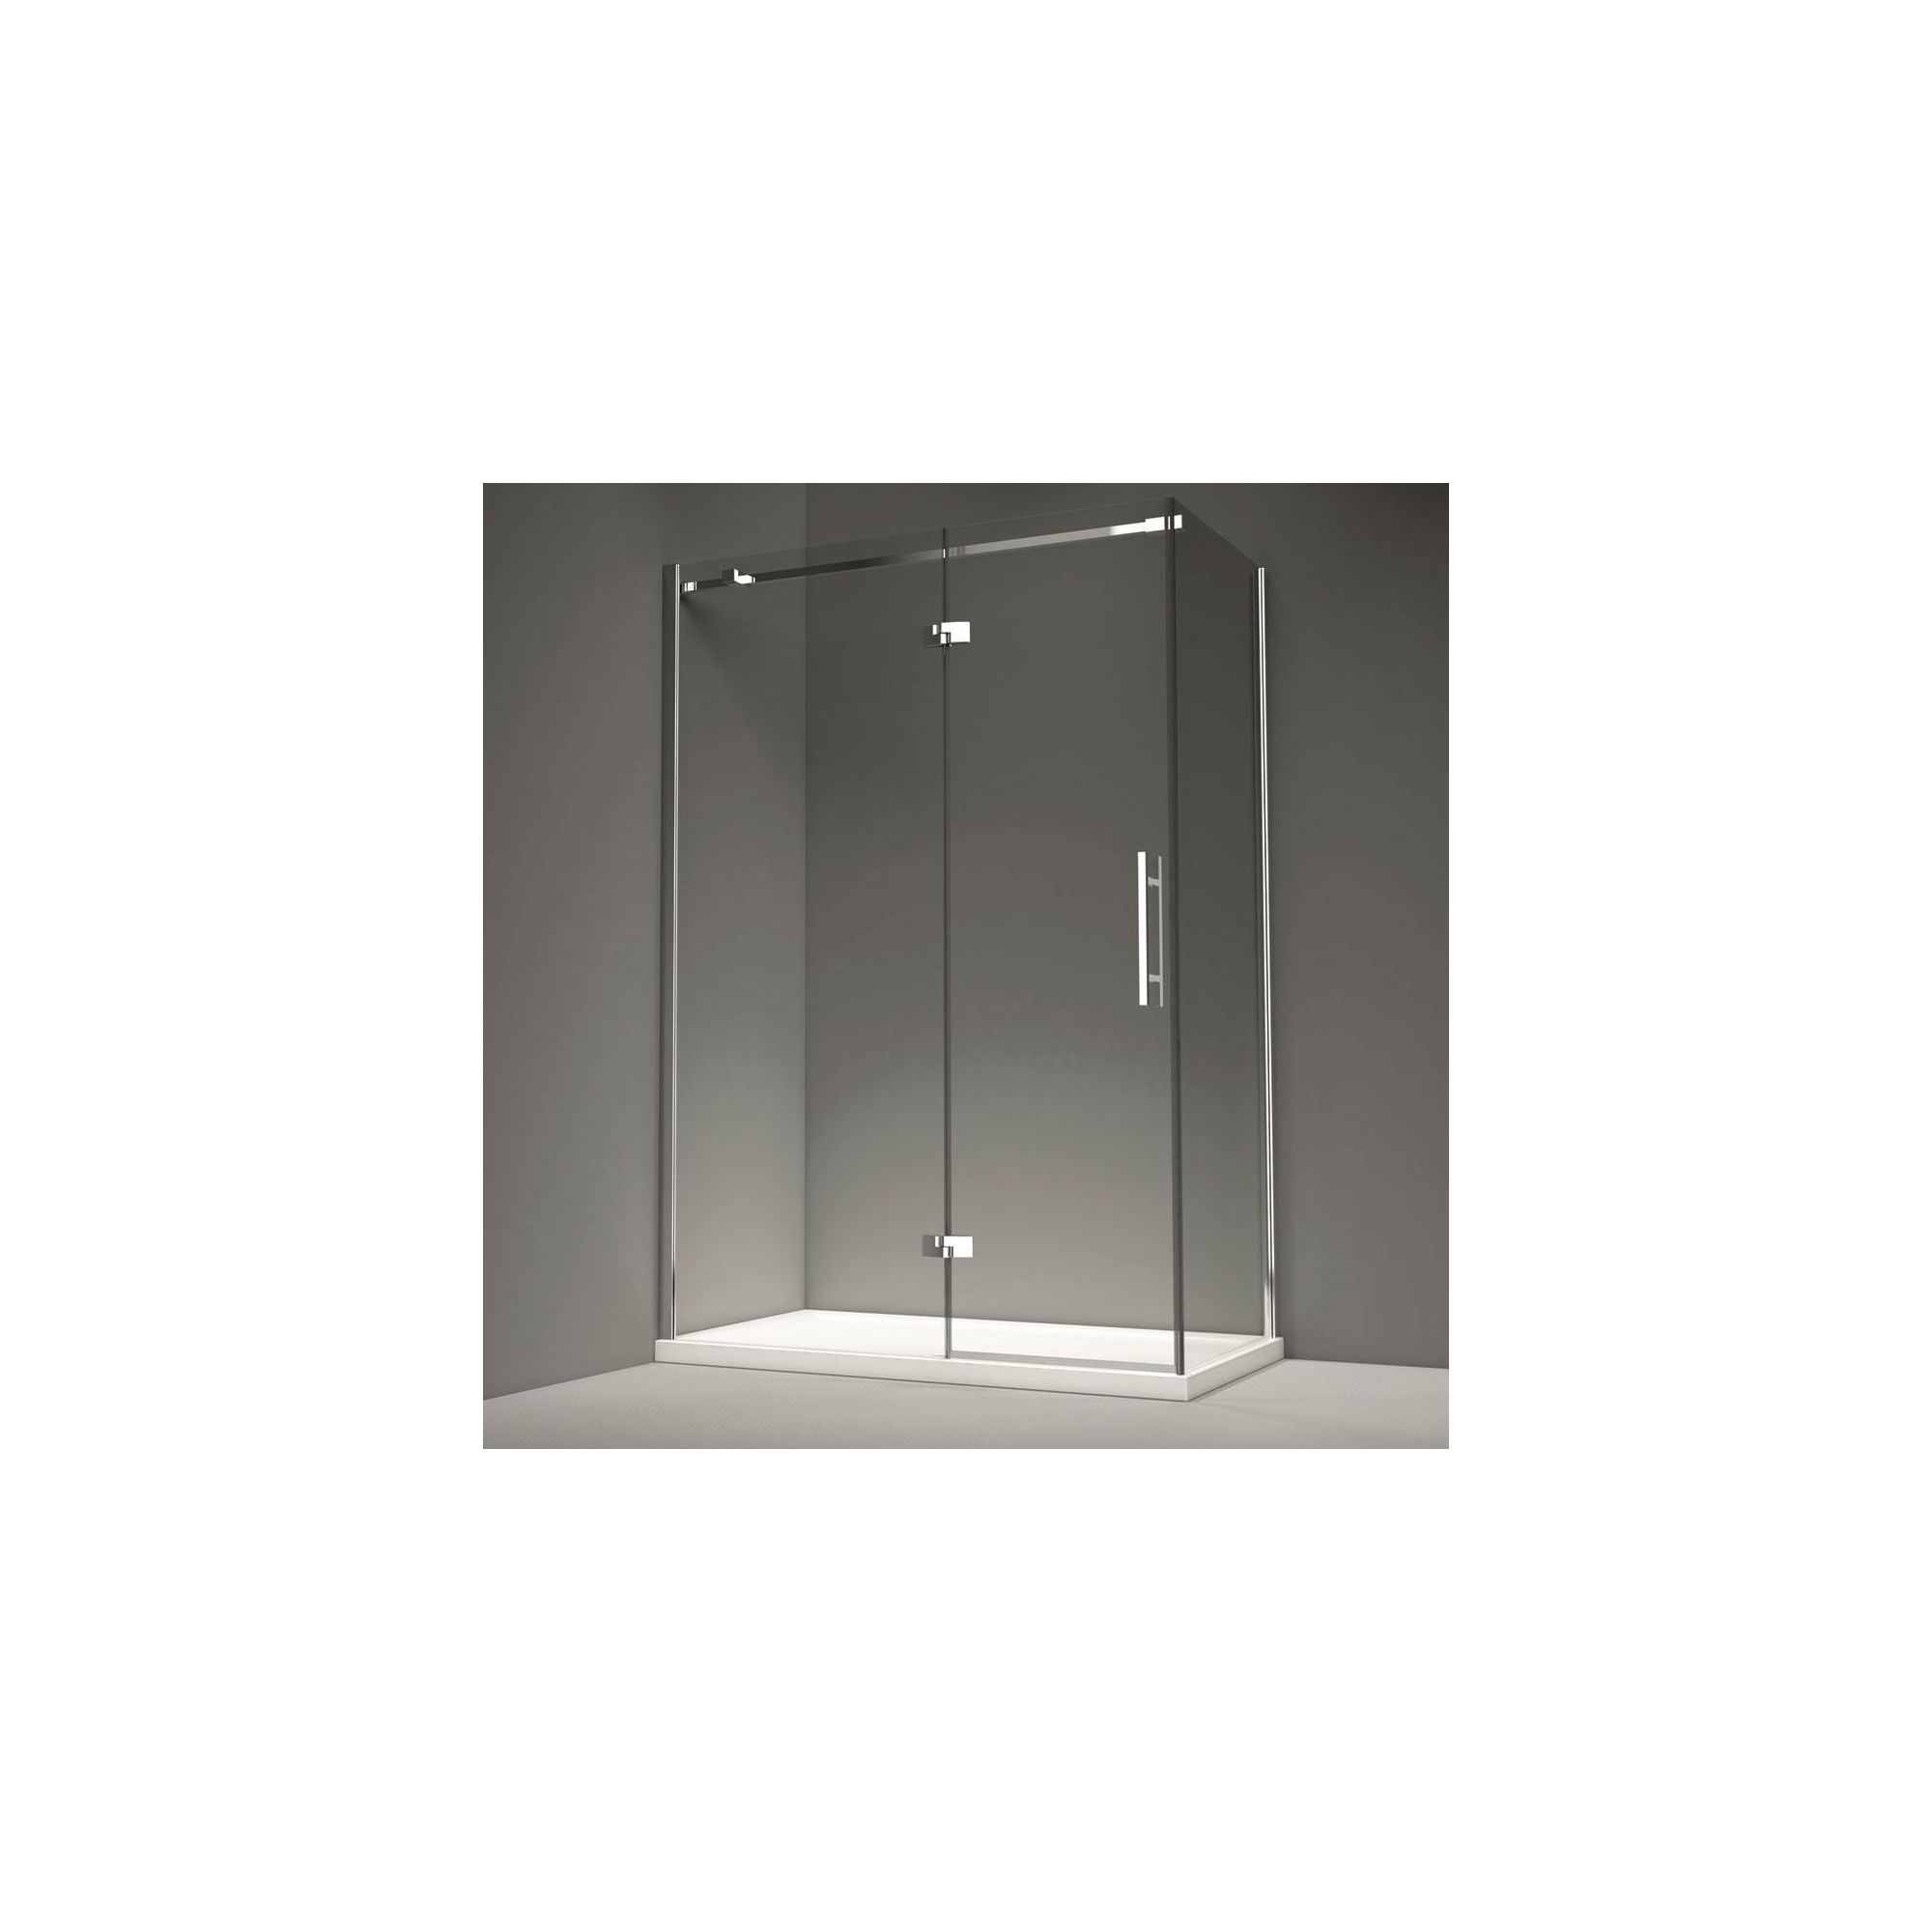 Merlyn Series 9 Inline Hinged Shower Door, 1200mm Wide, 8mm Glass, Left Handed at Tesco Direct